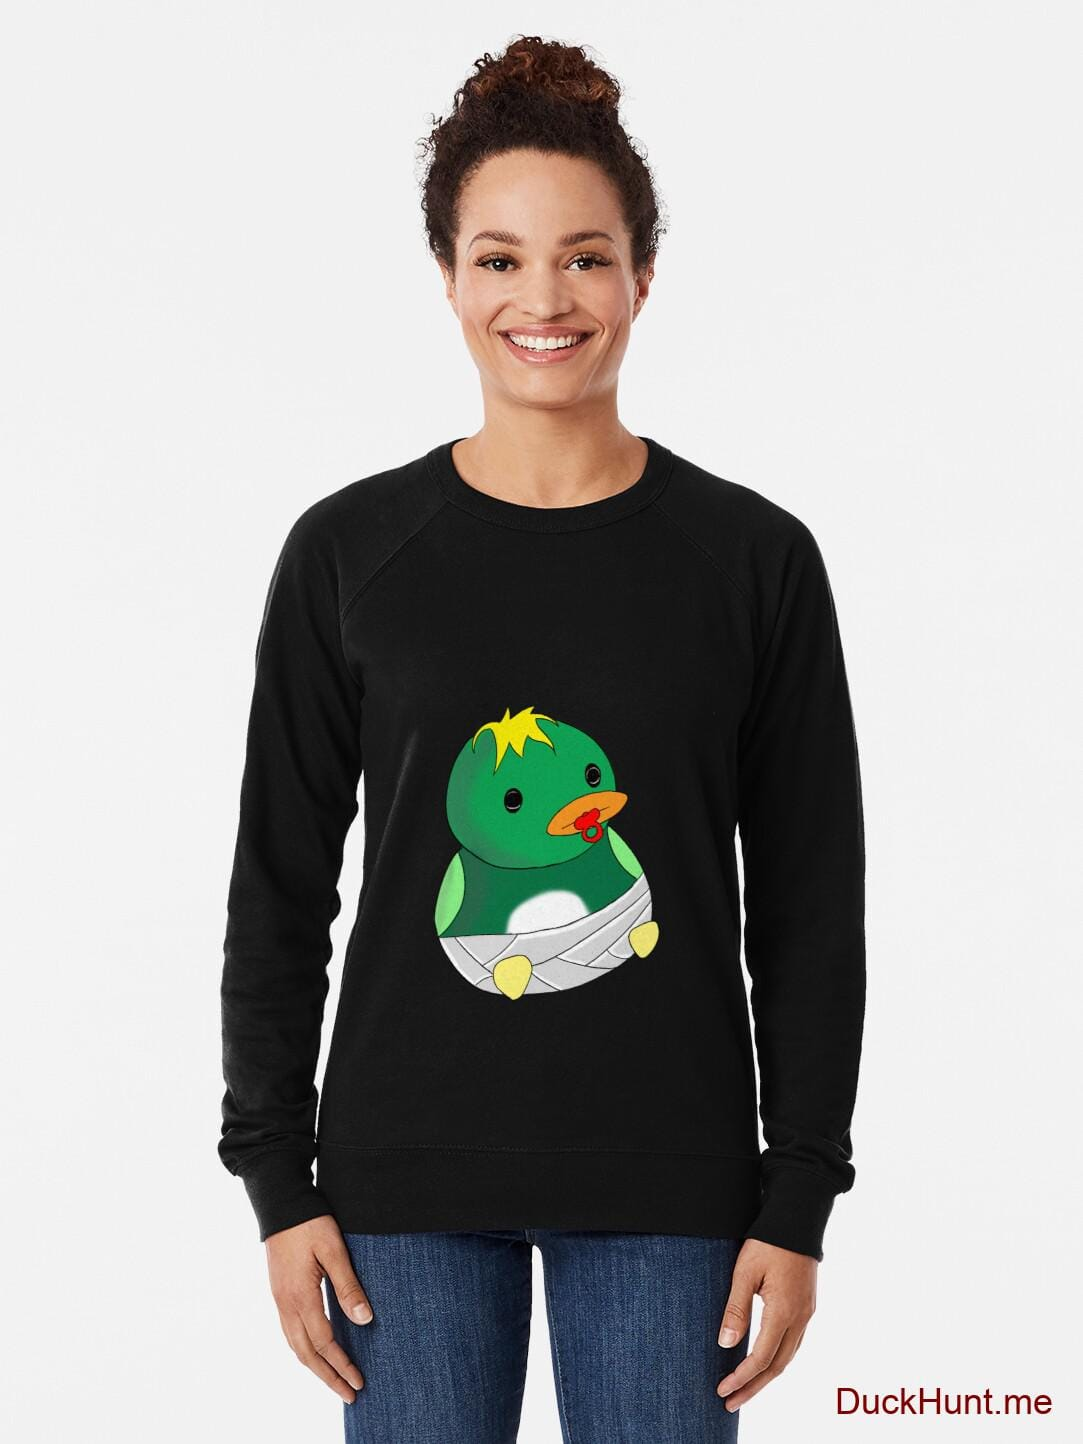 Baby duck Black Lightweight Sweatshirt alternative image 1